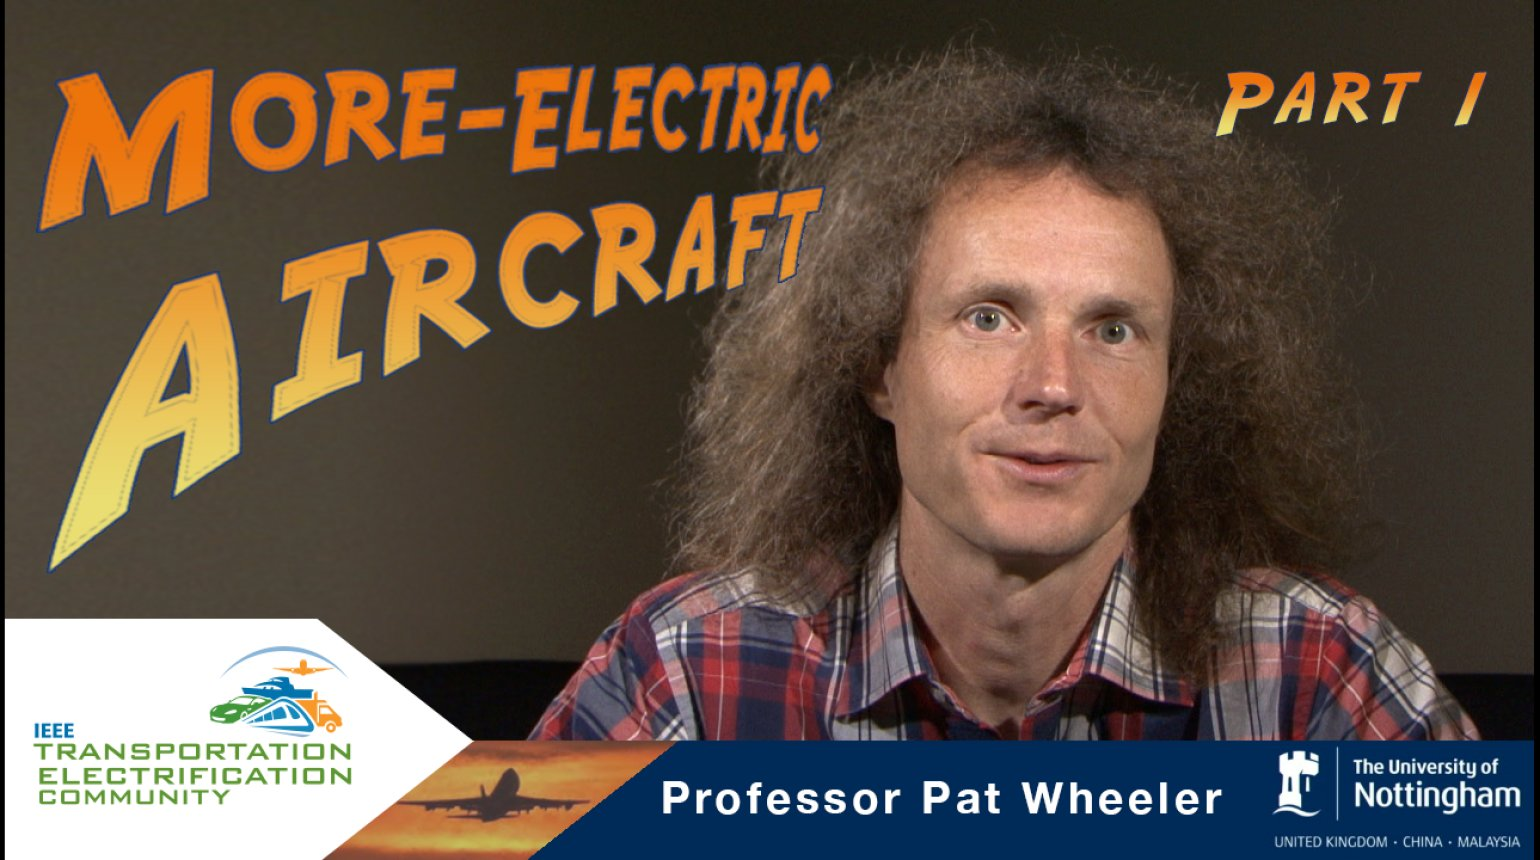 The More Electric Aircraft - Pat Wheeler